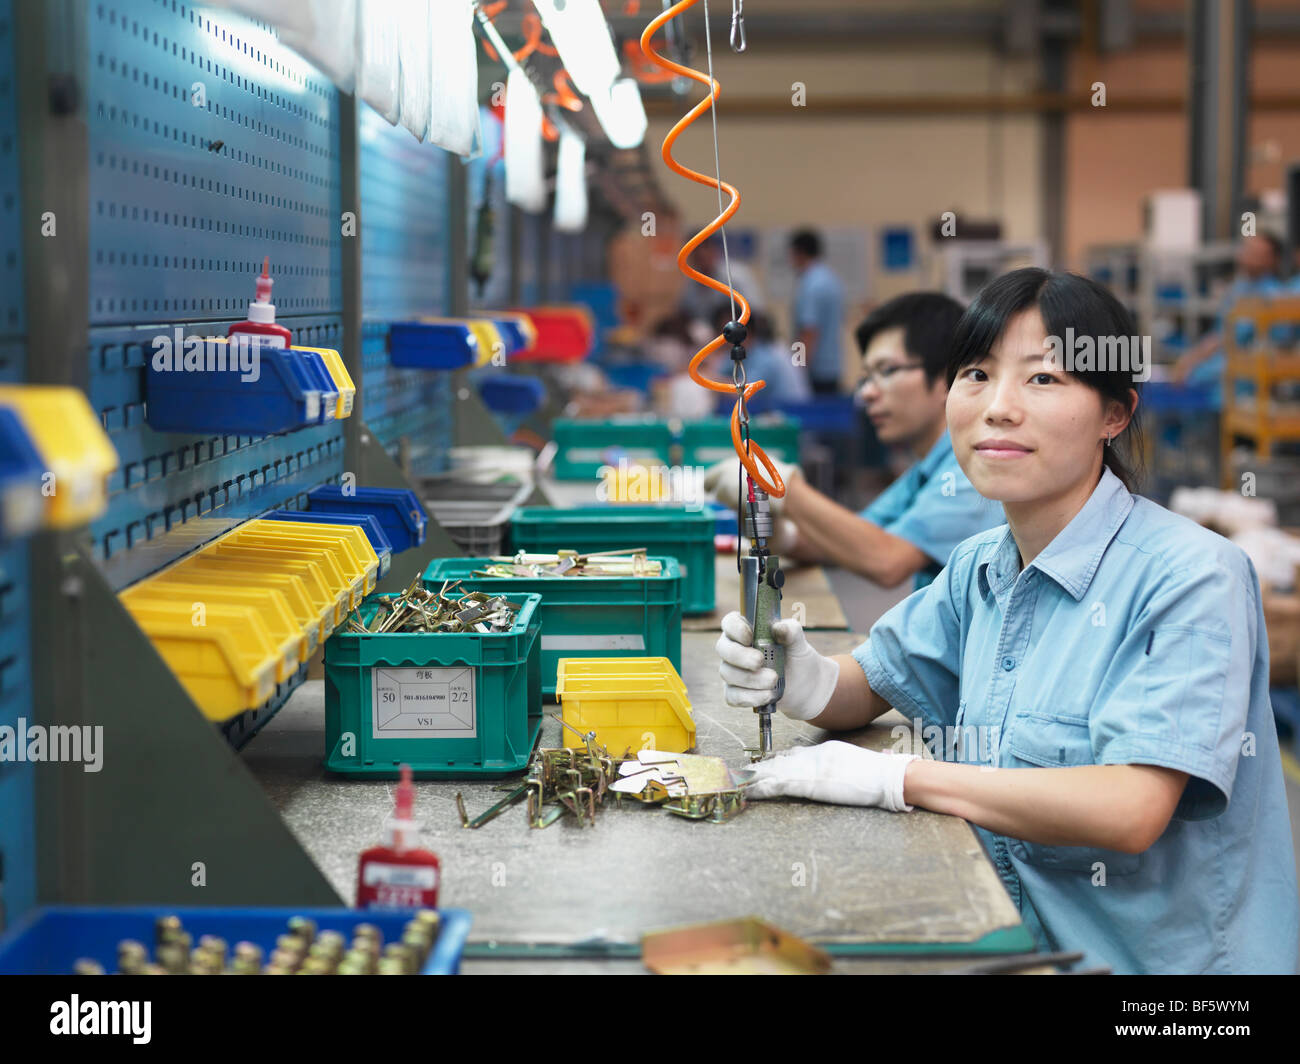 A woman bolting parts of hardware together in a factory assembly line. Stock Photo